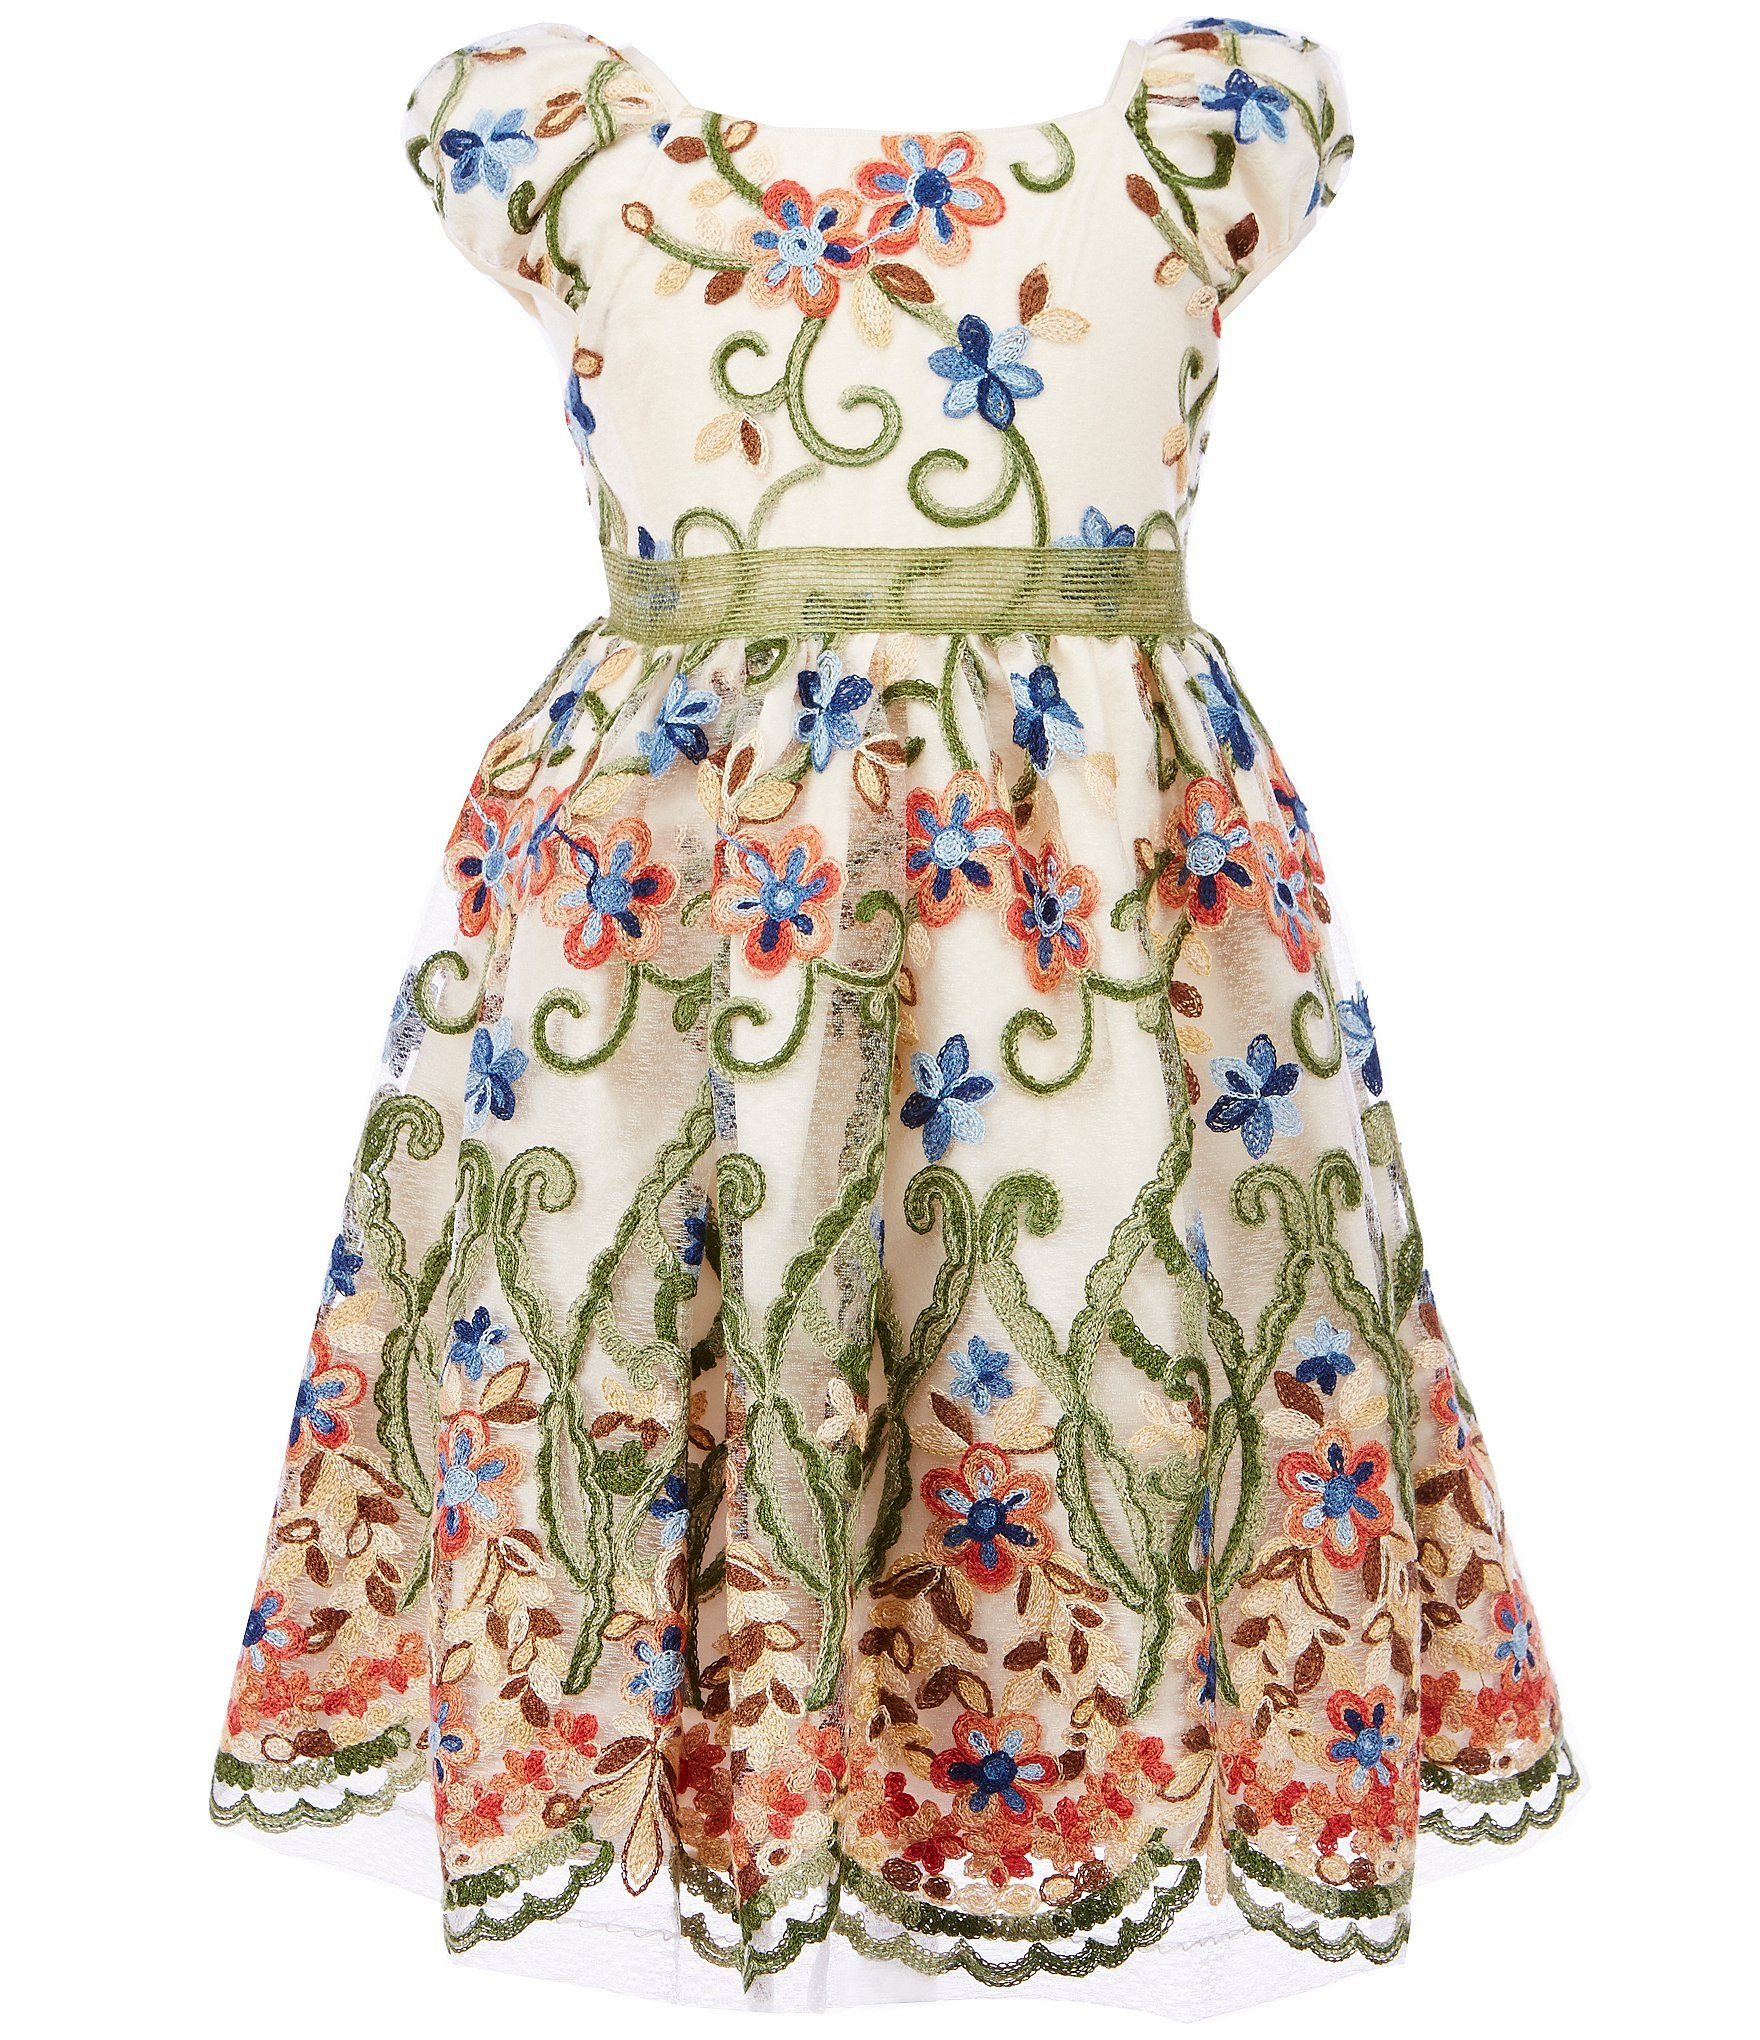 b81d4110aa Shop for Pippa   Julie Little Girls 2T-6X Floral Embroidery Fit-And-Flare  Dress at Dillards.com. Visit Dillards.com to find clothing